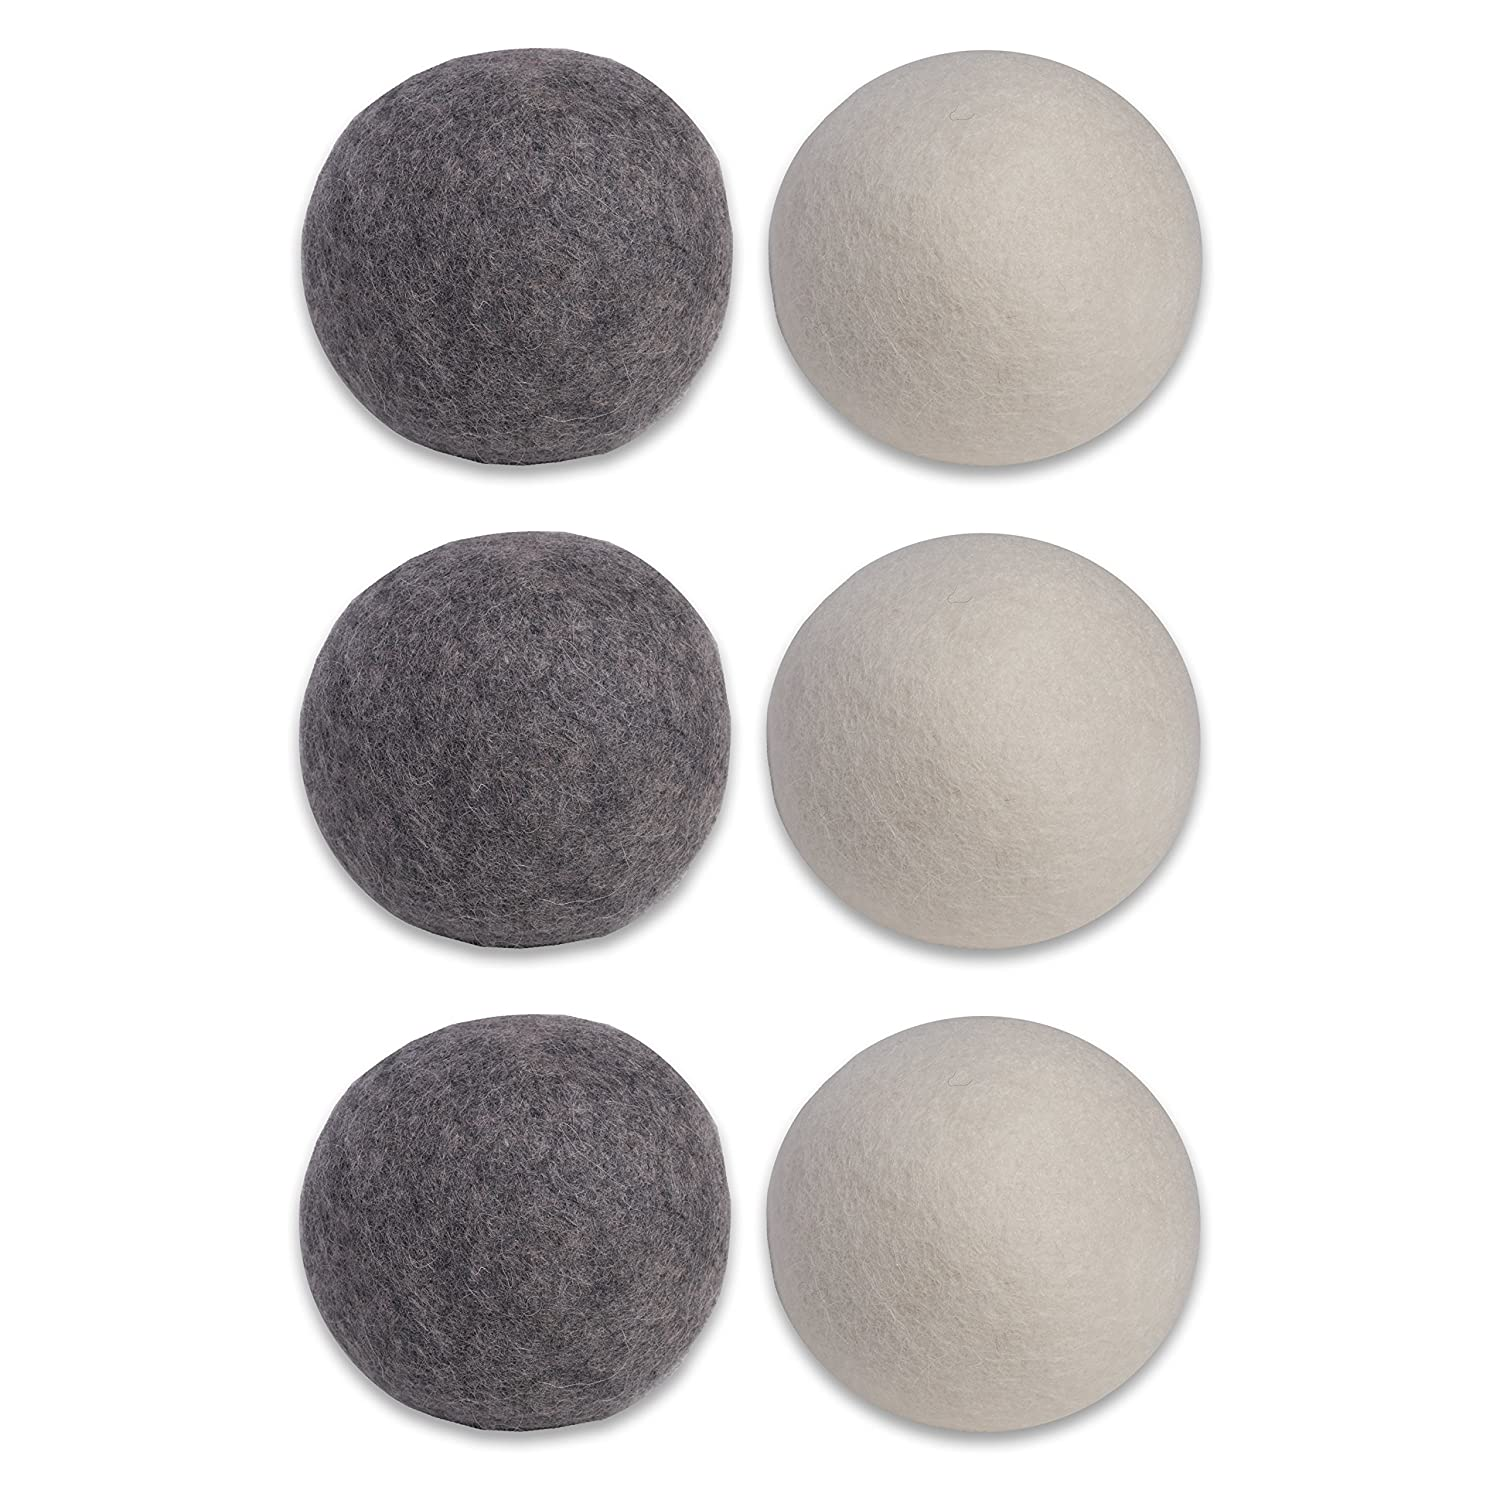 DII Europa Essentials Wool Dryer Balls 100% Organic Zealand Natural Fabric Softener, Static & Wrinkle Reducing, Unscented, Shorten Drying Time, Reusable 1000 Loads, 2.9' D 6 Pack-3 Ivory & 3 Gray 2.9 D 6 Pack-3 Ivory & 3 Gray Z02195-FNSKU